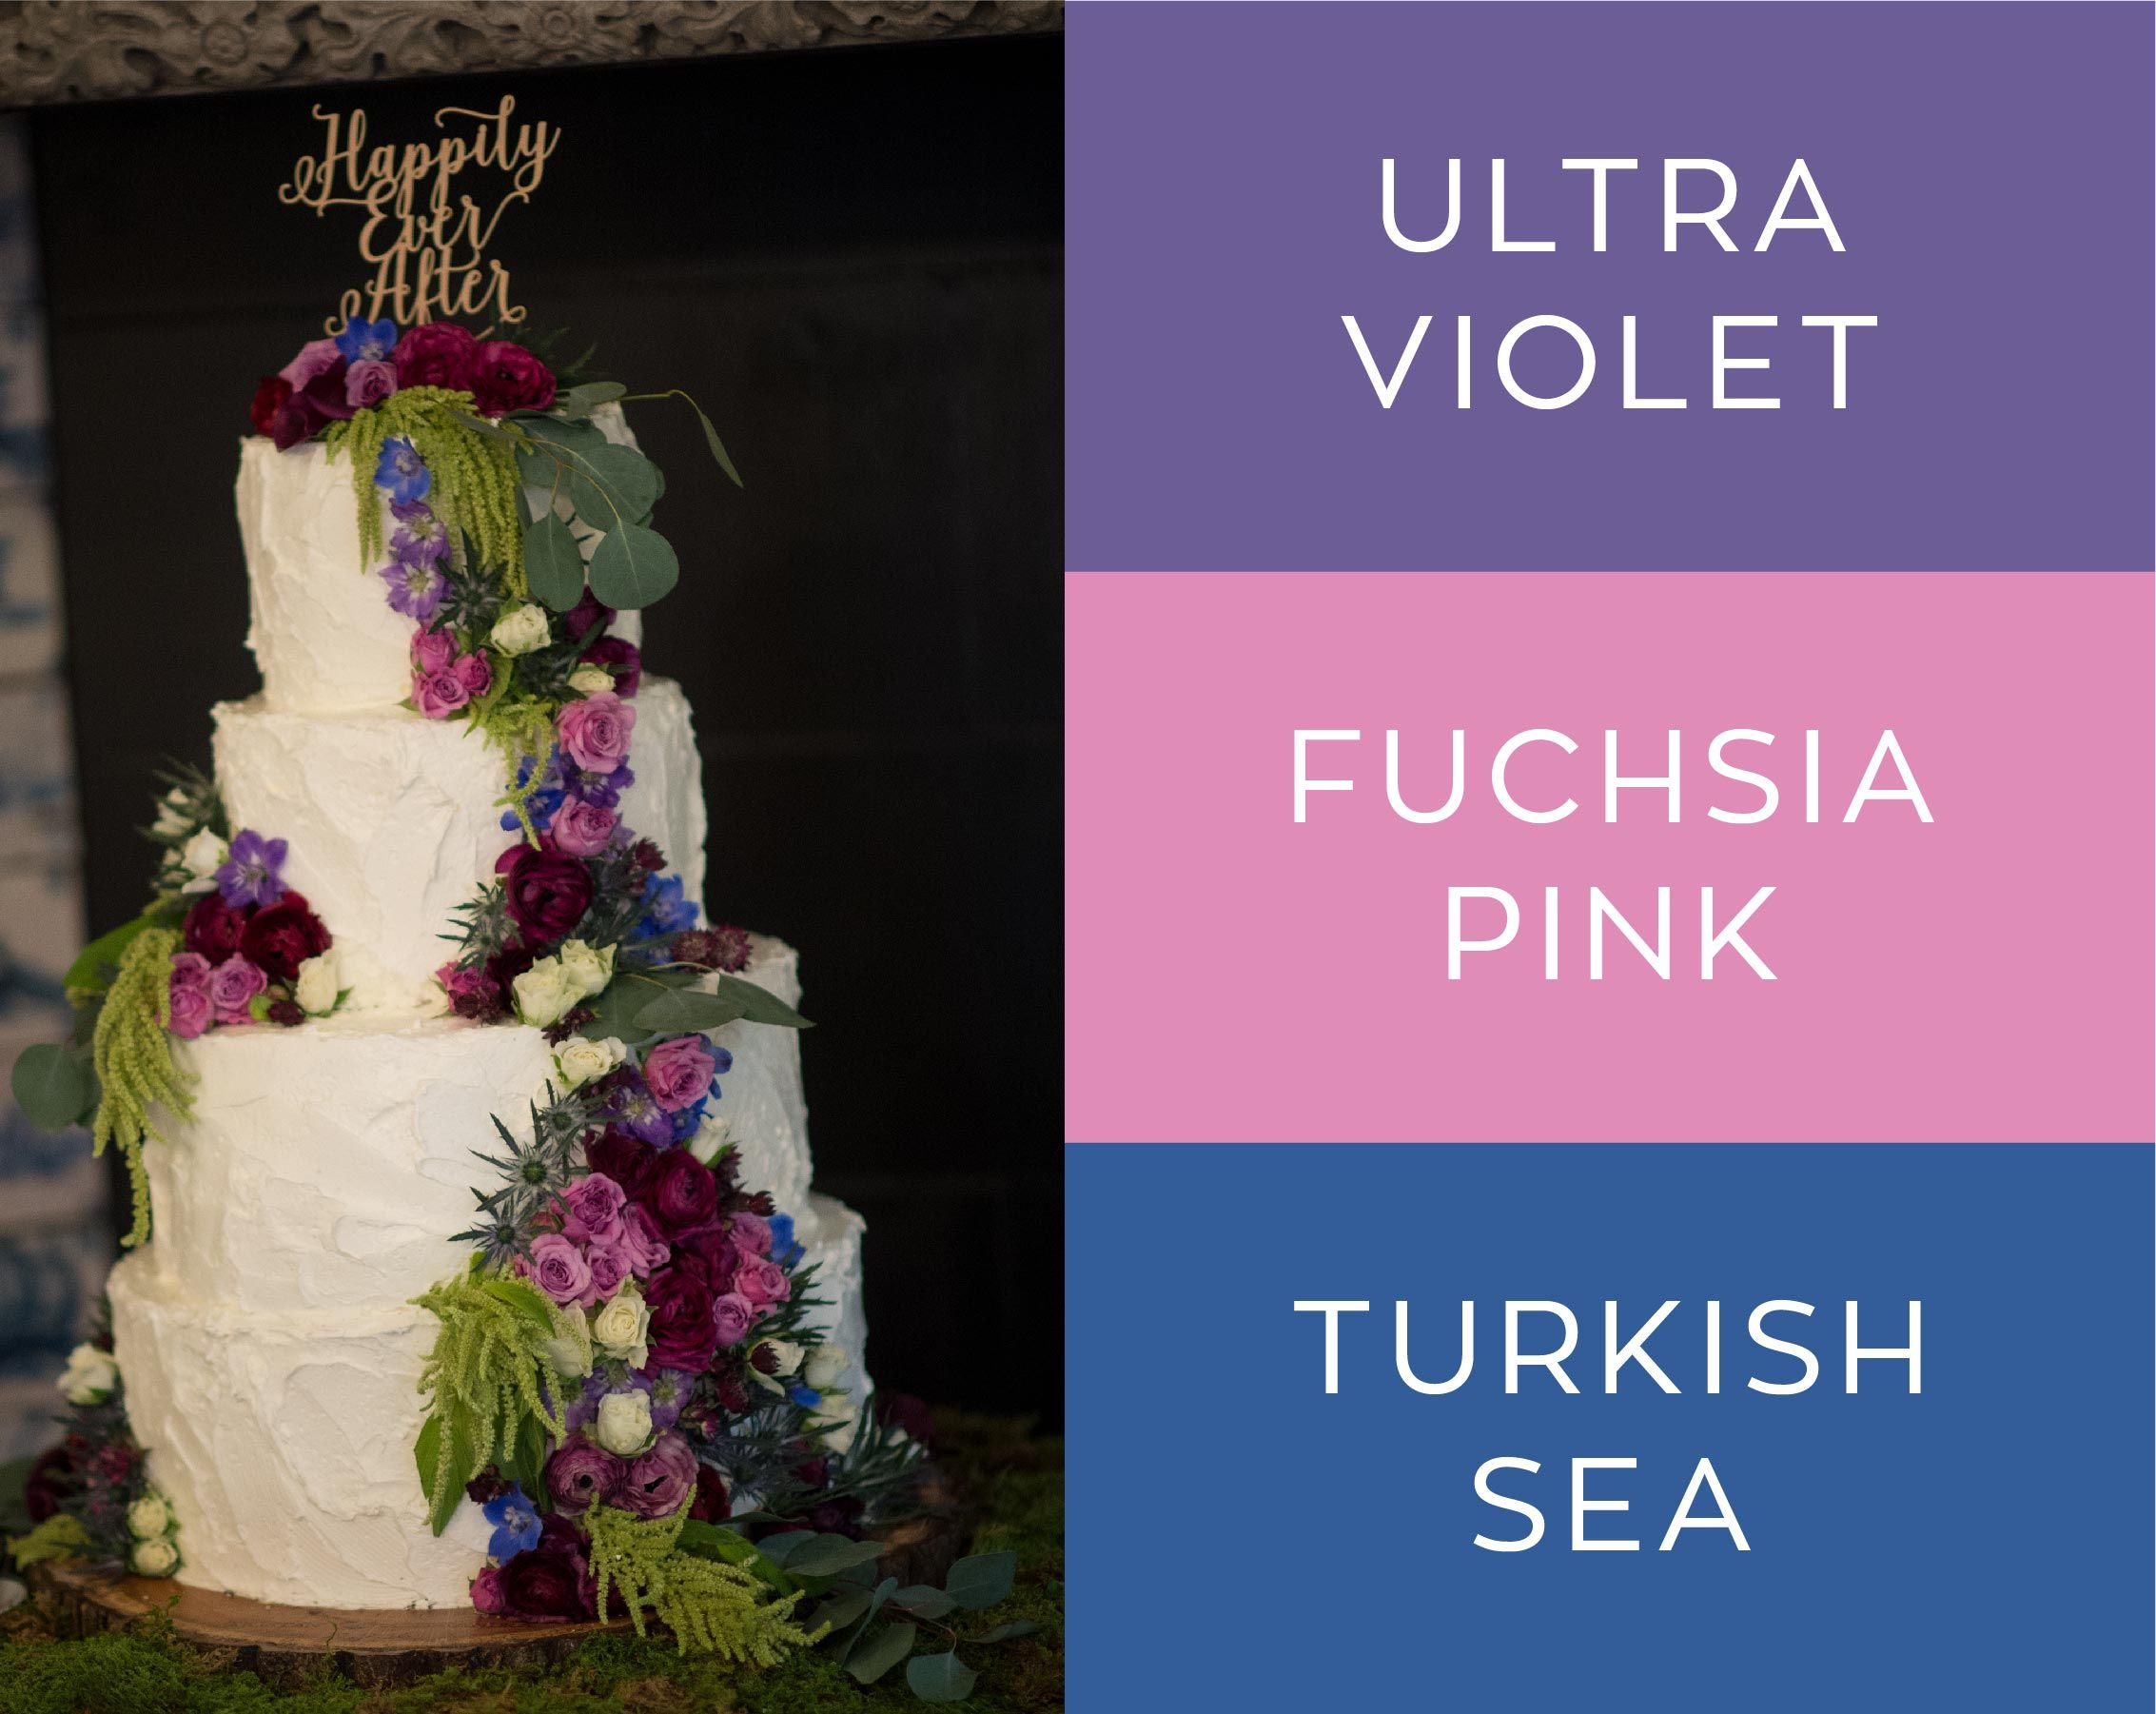 Weddings at Ultra violet Rustic wedding cakes and Violets